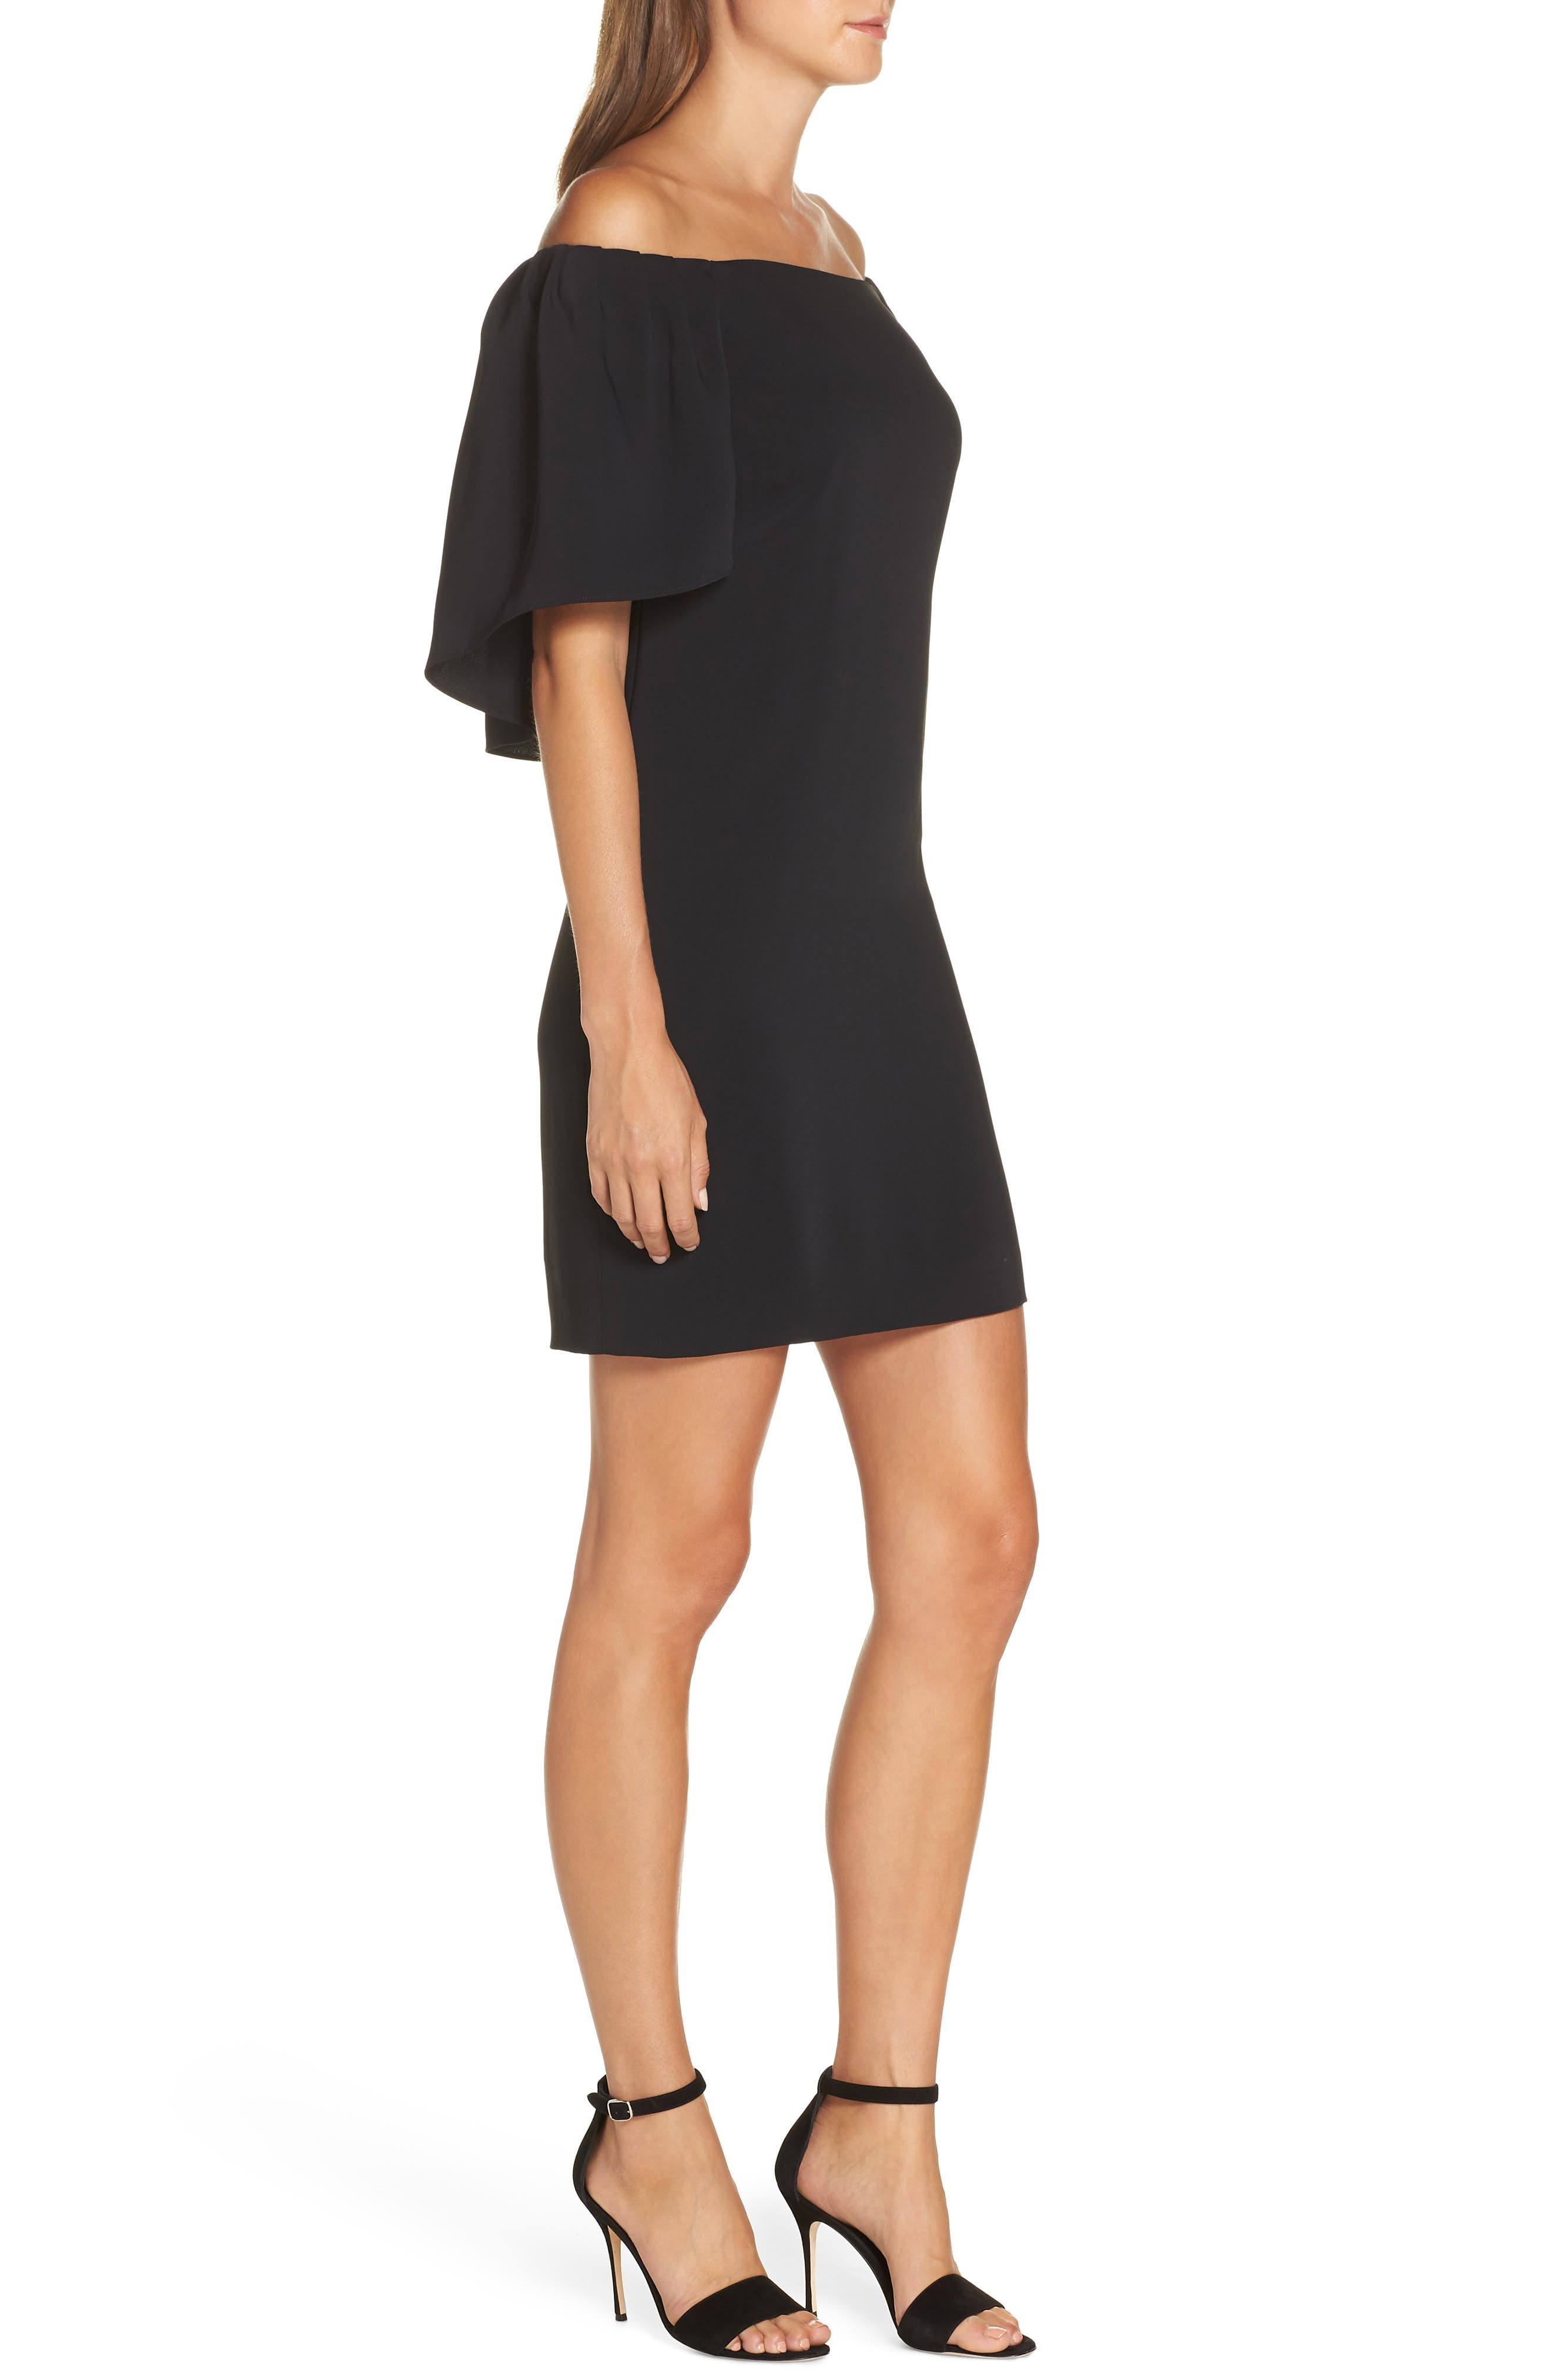 TRINA TRINA TURK,                             Zeal Off the Shoulder Dress,                             Alternate thumbnail 3, color,                             001